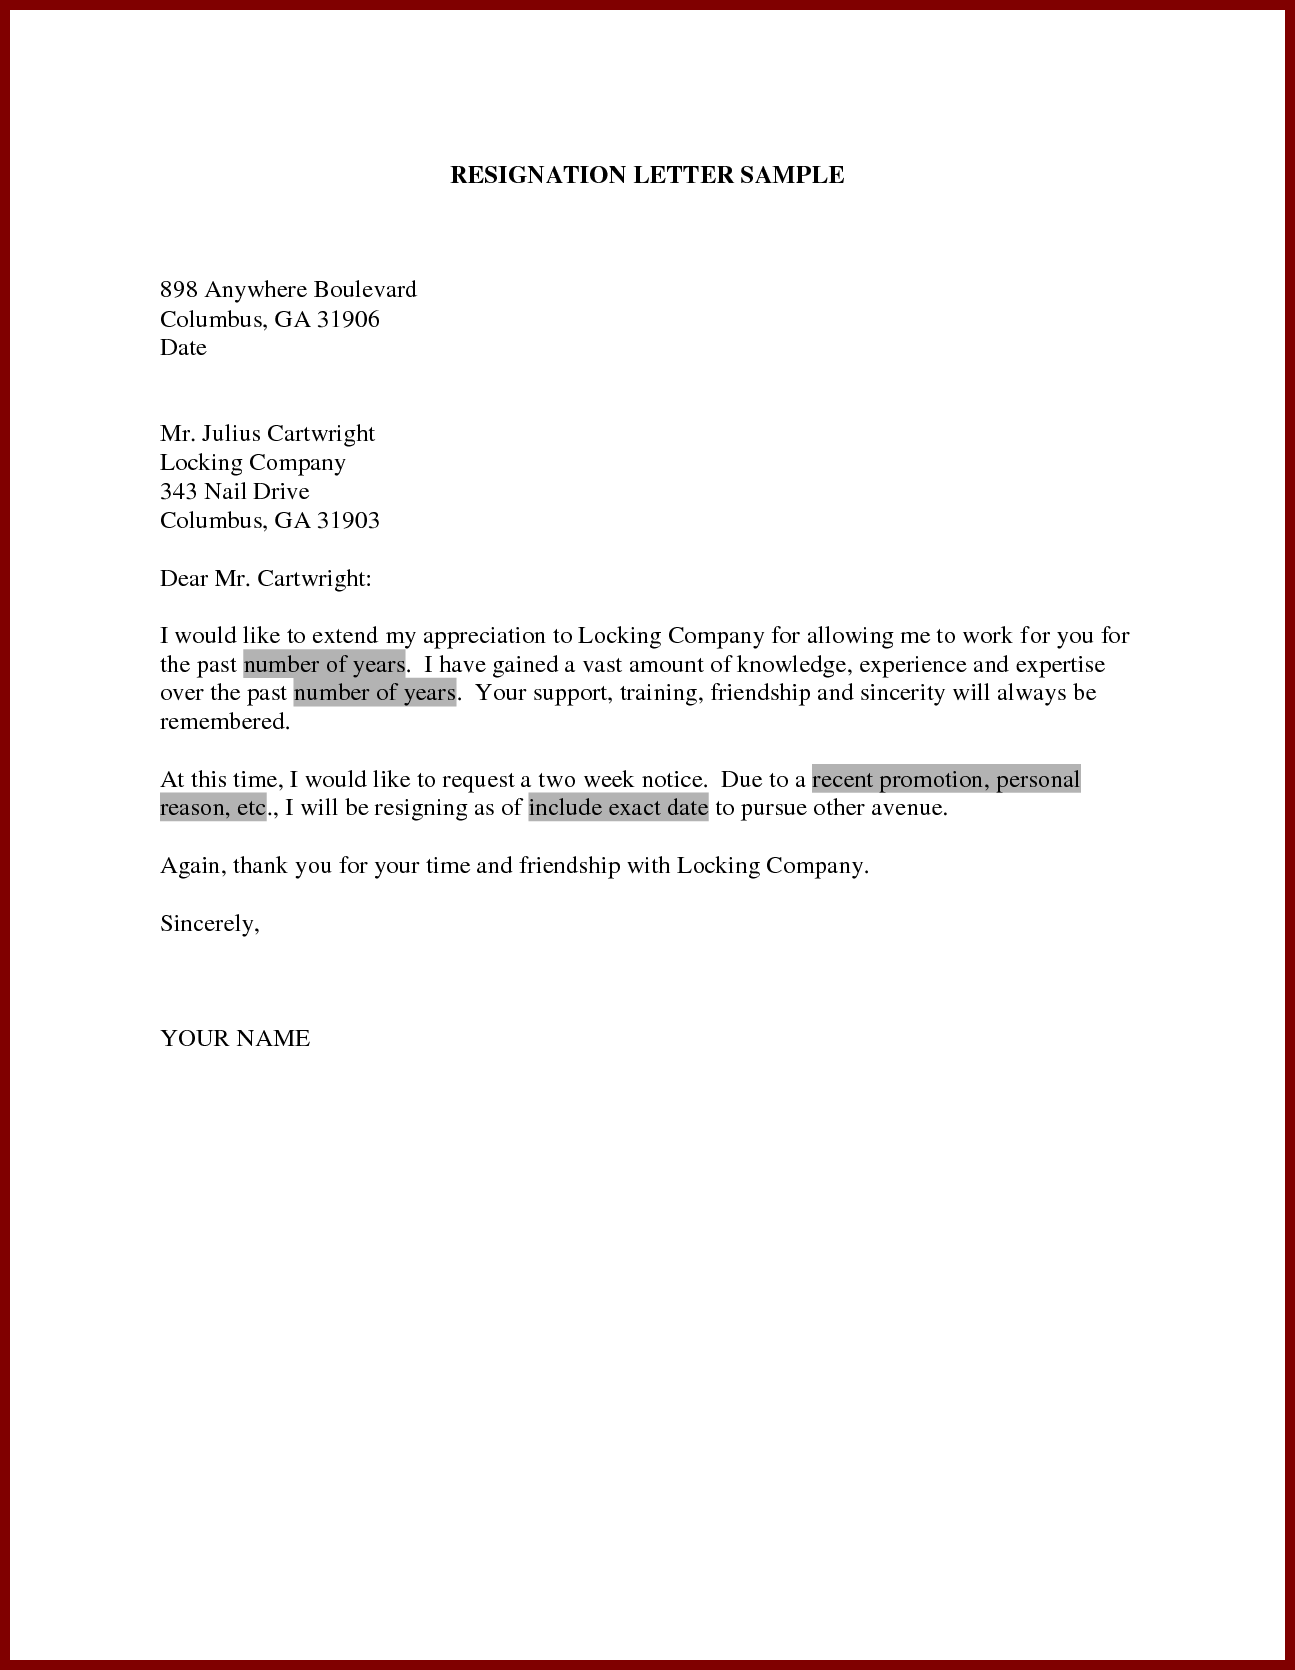 Resignation Letter Sample Resignation Email Sample Resignation Template Resignation Example How To Write